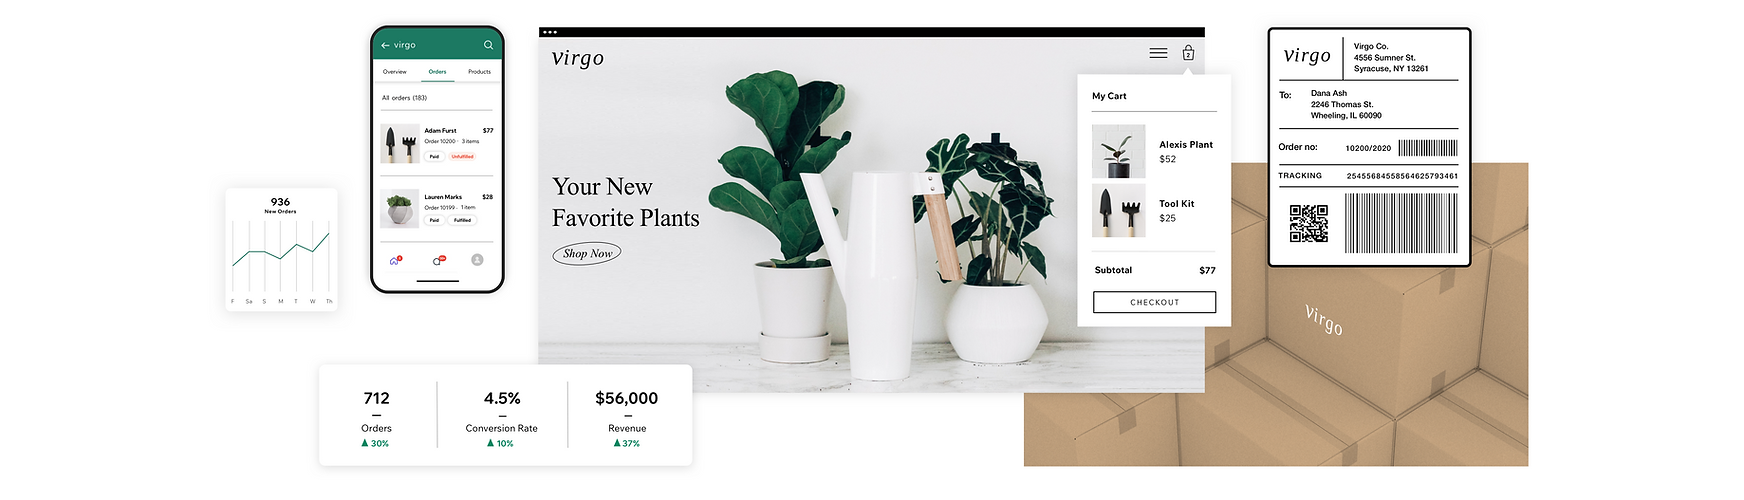 Wix eCommerce tools to manage and track sales, orders and fulfillment